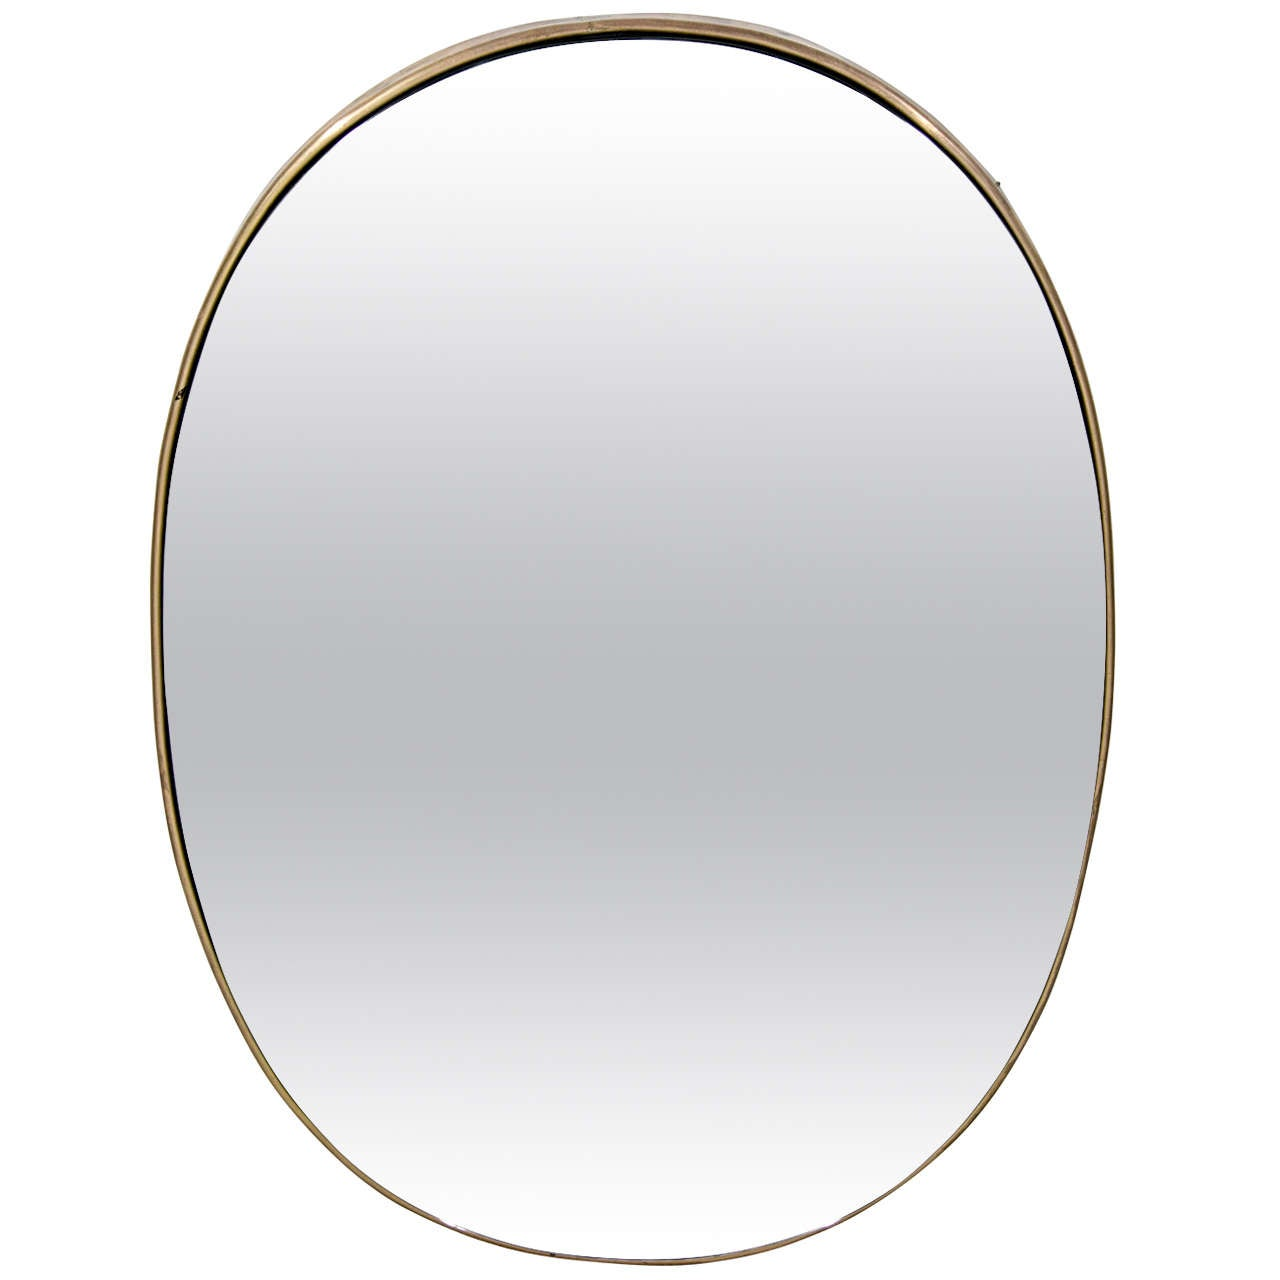 Style of fontana arte oval mirror with brass frame at 1stdibs for Mirror frame styles